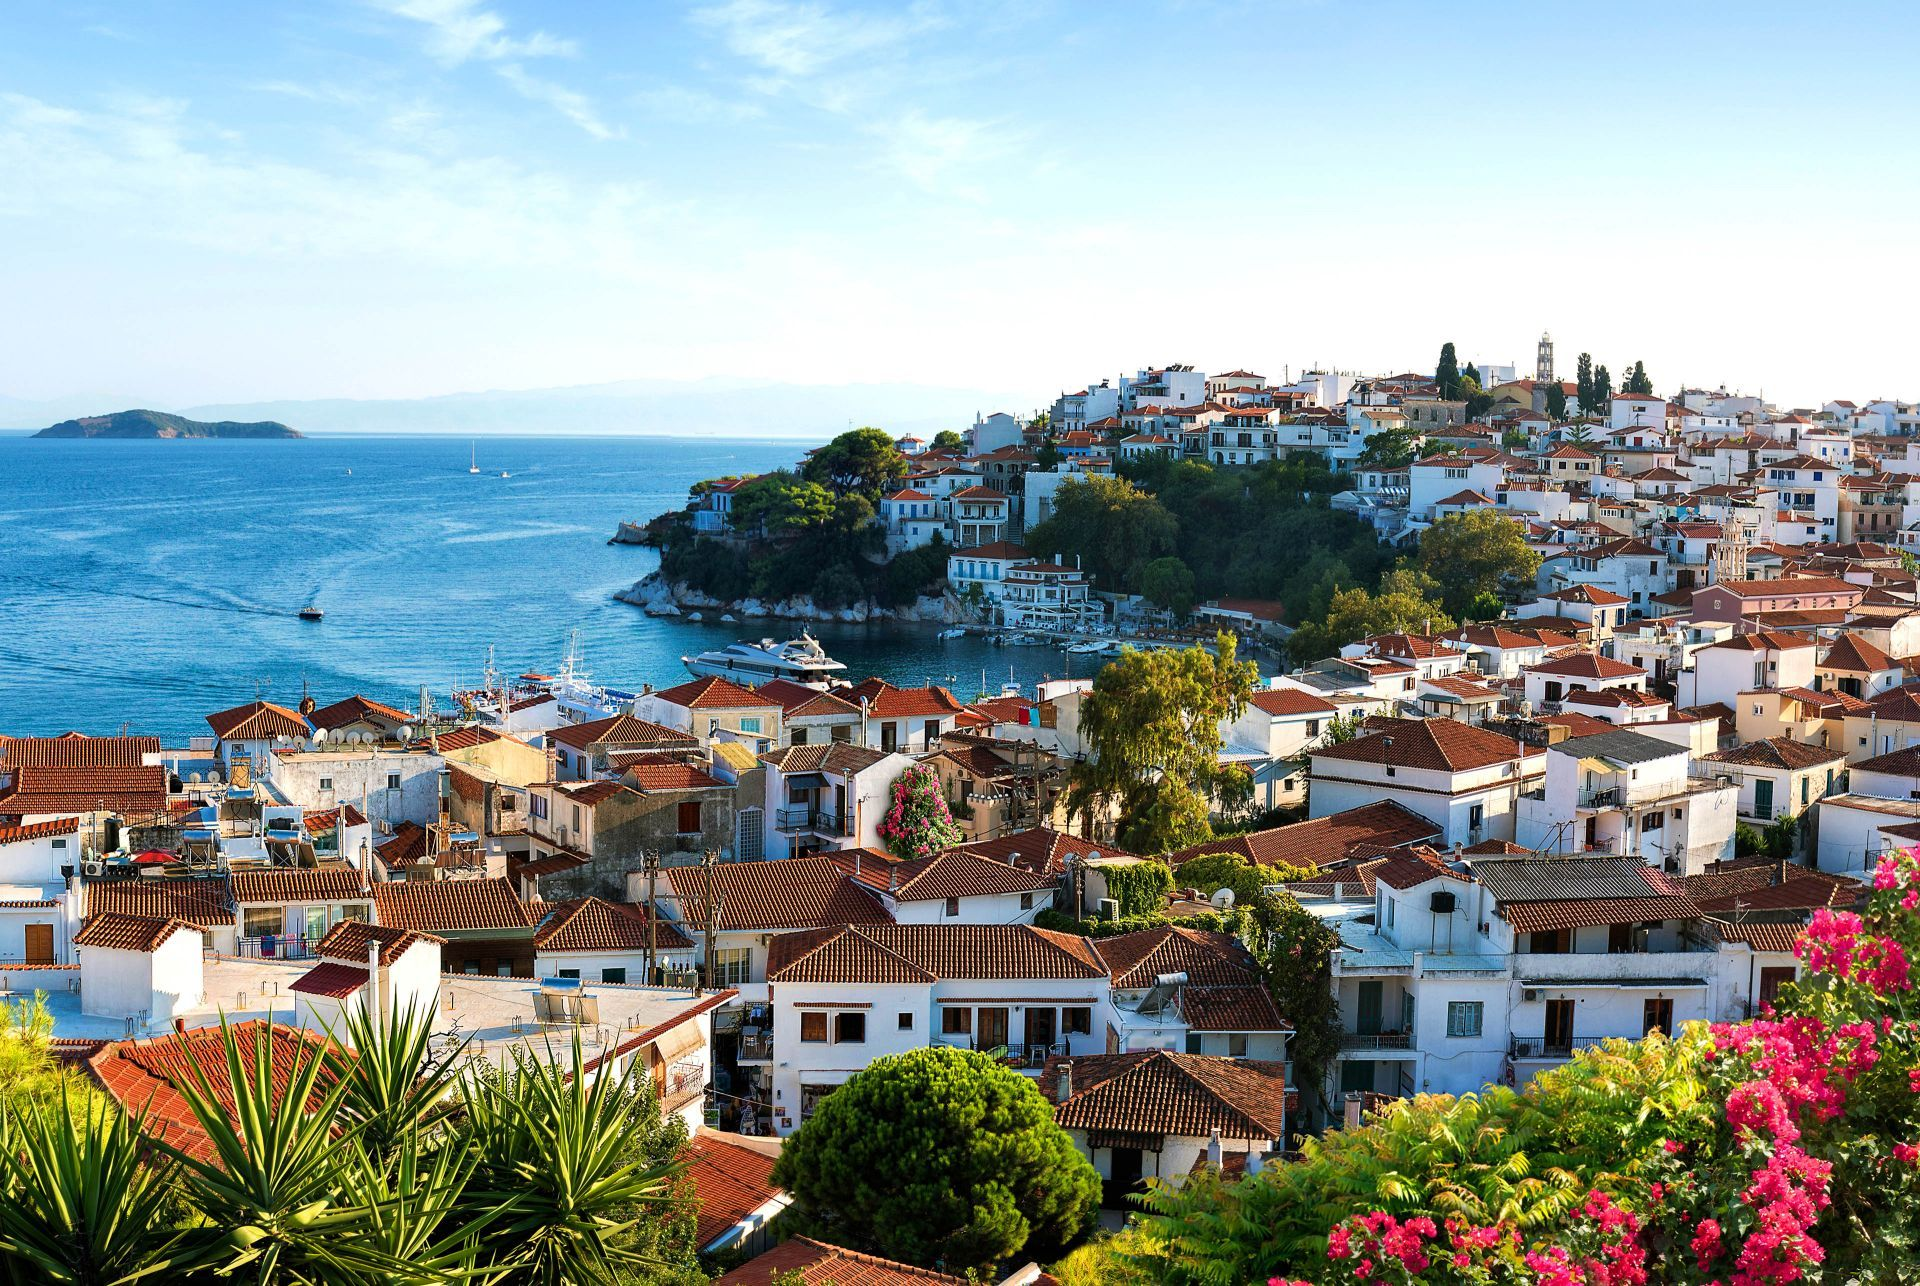 Accommodation and hotels in Skiathos